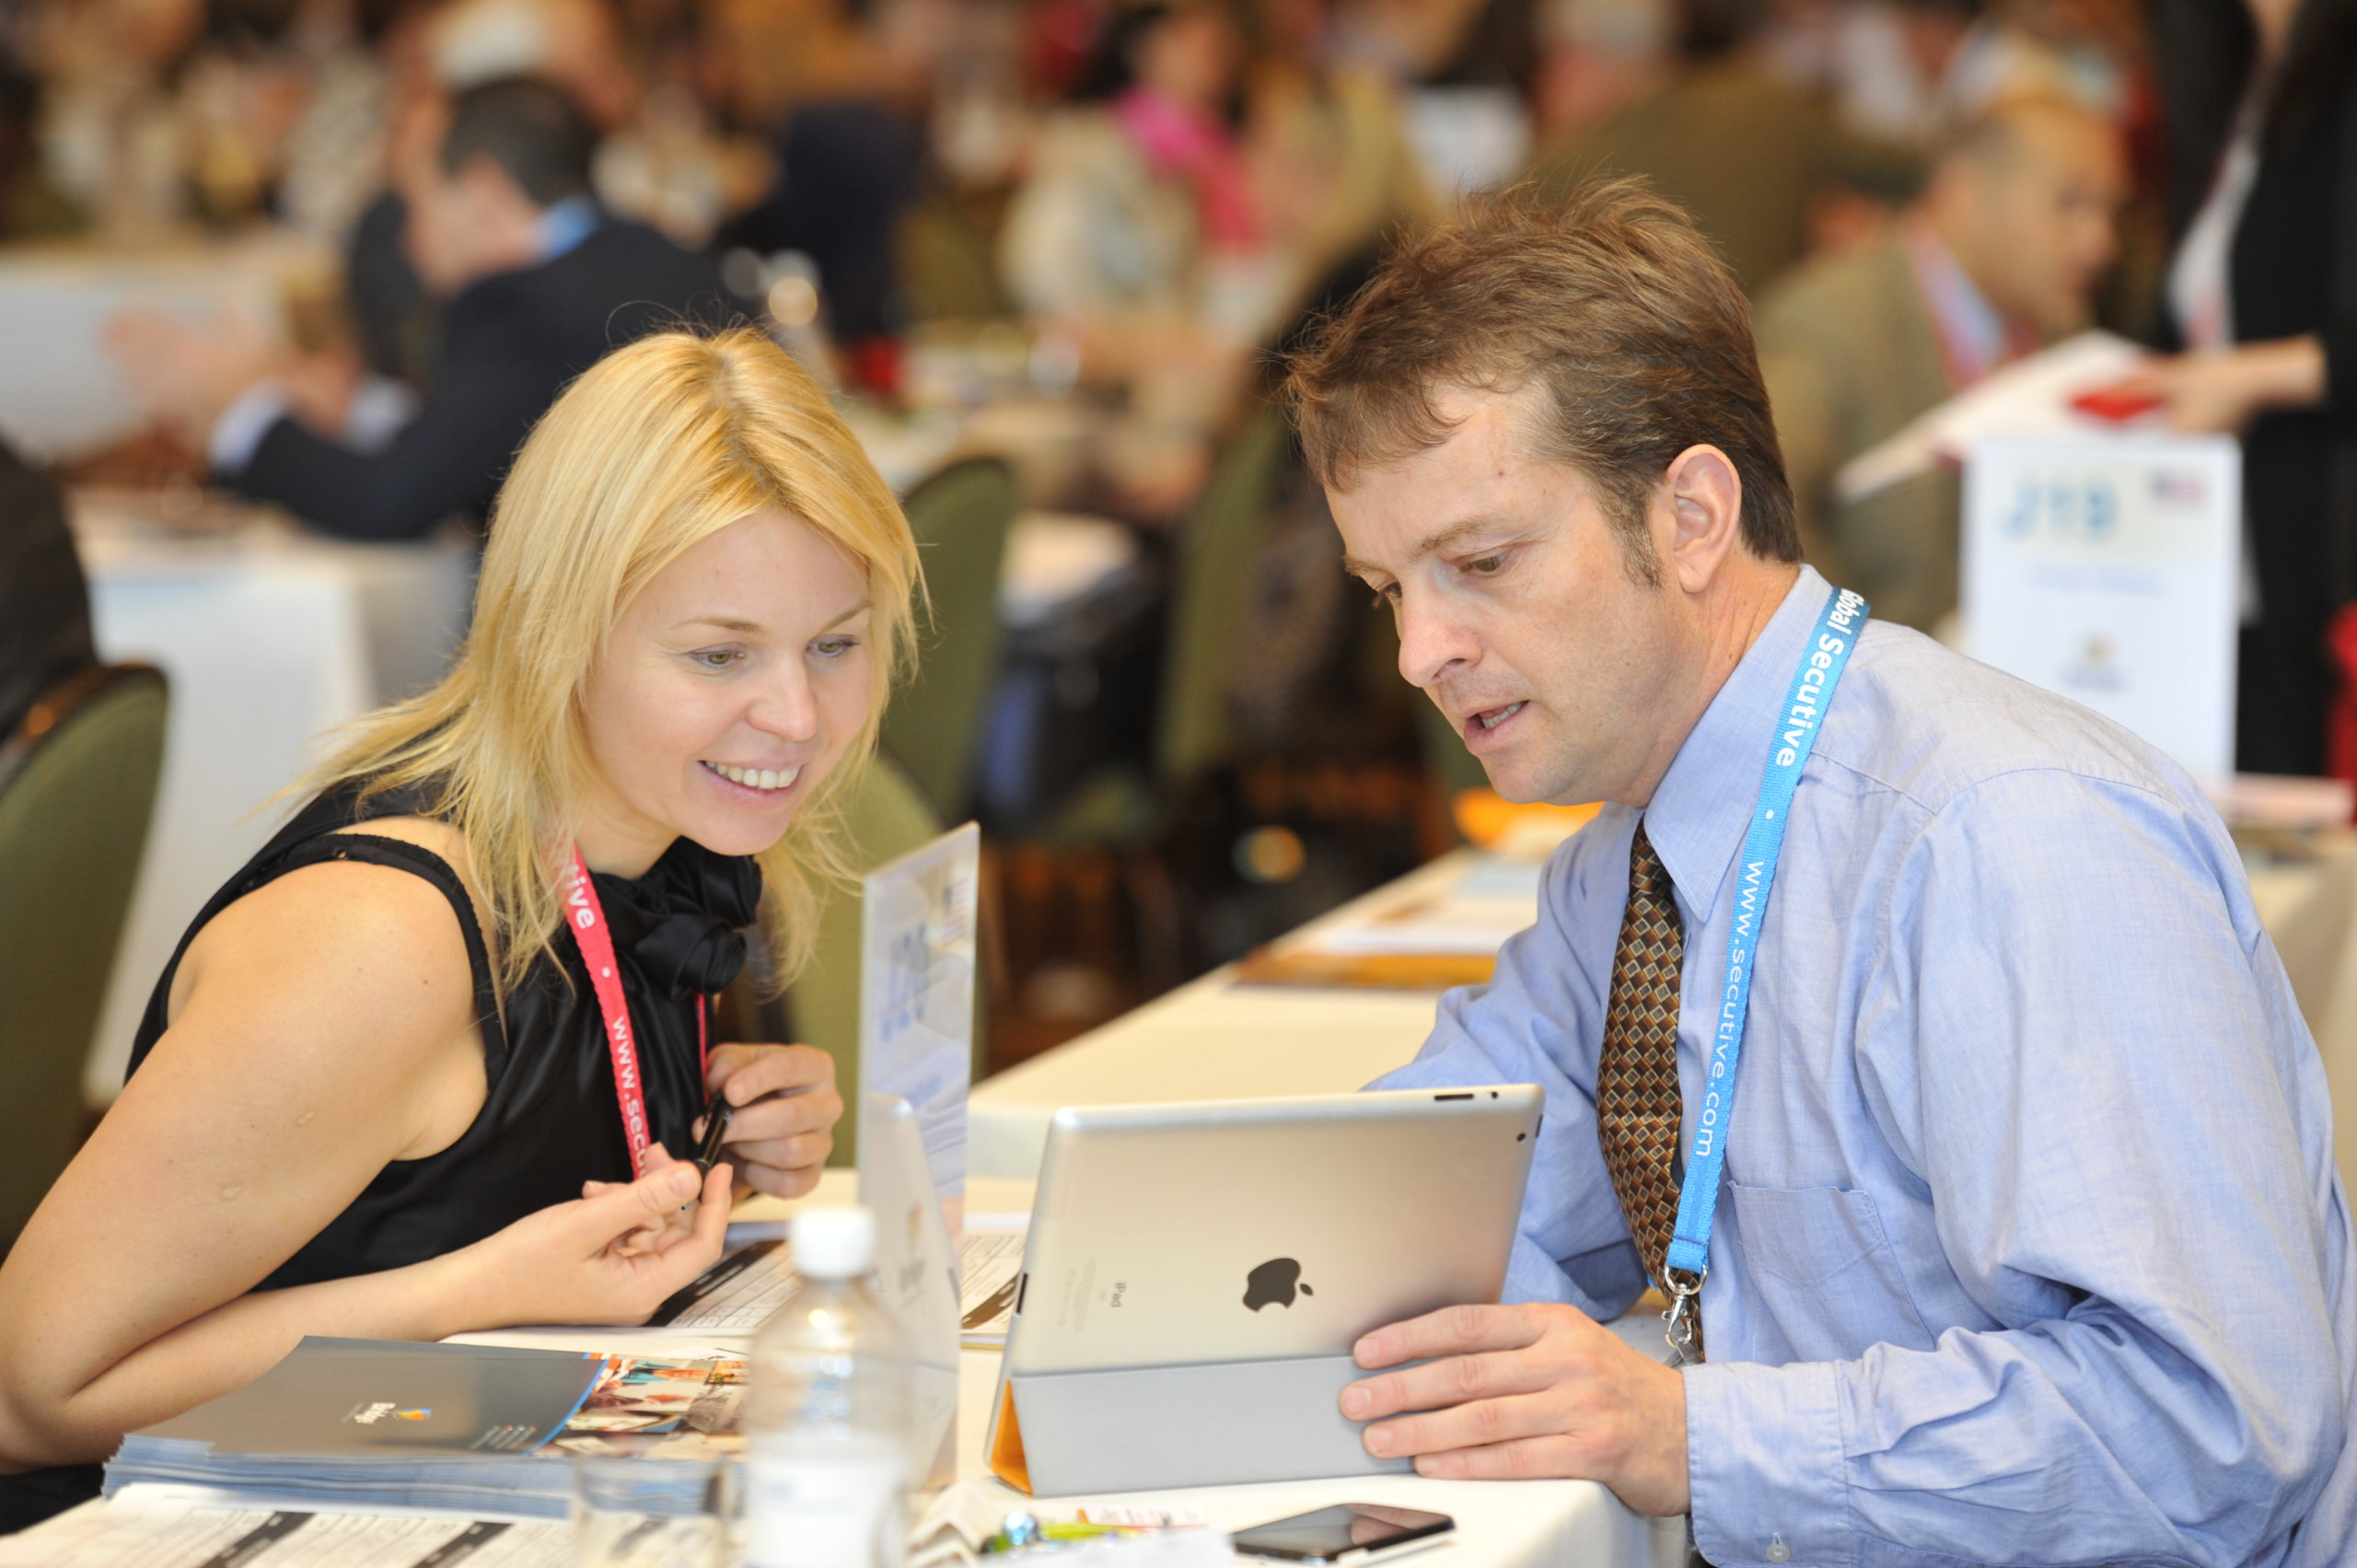 Working with commission-based education agents: the real issue